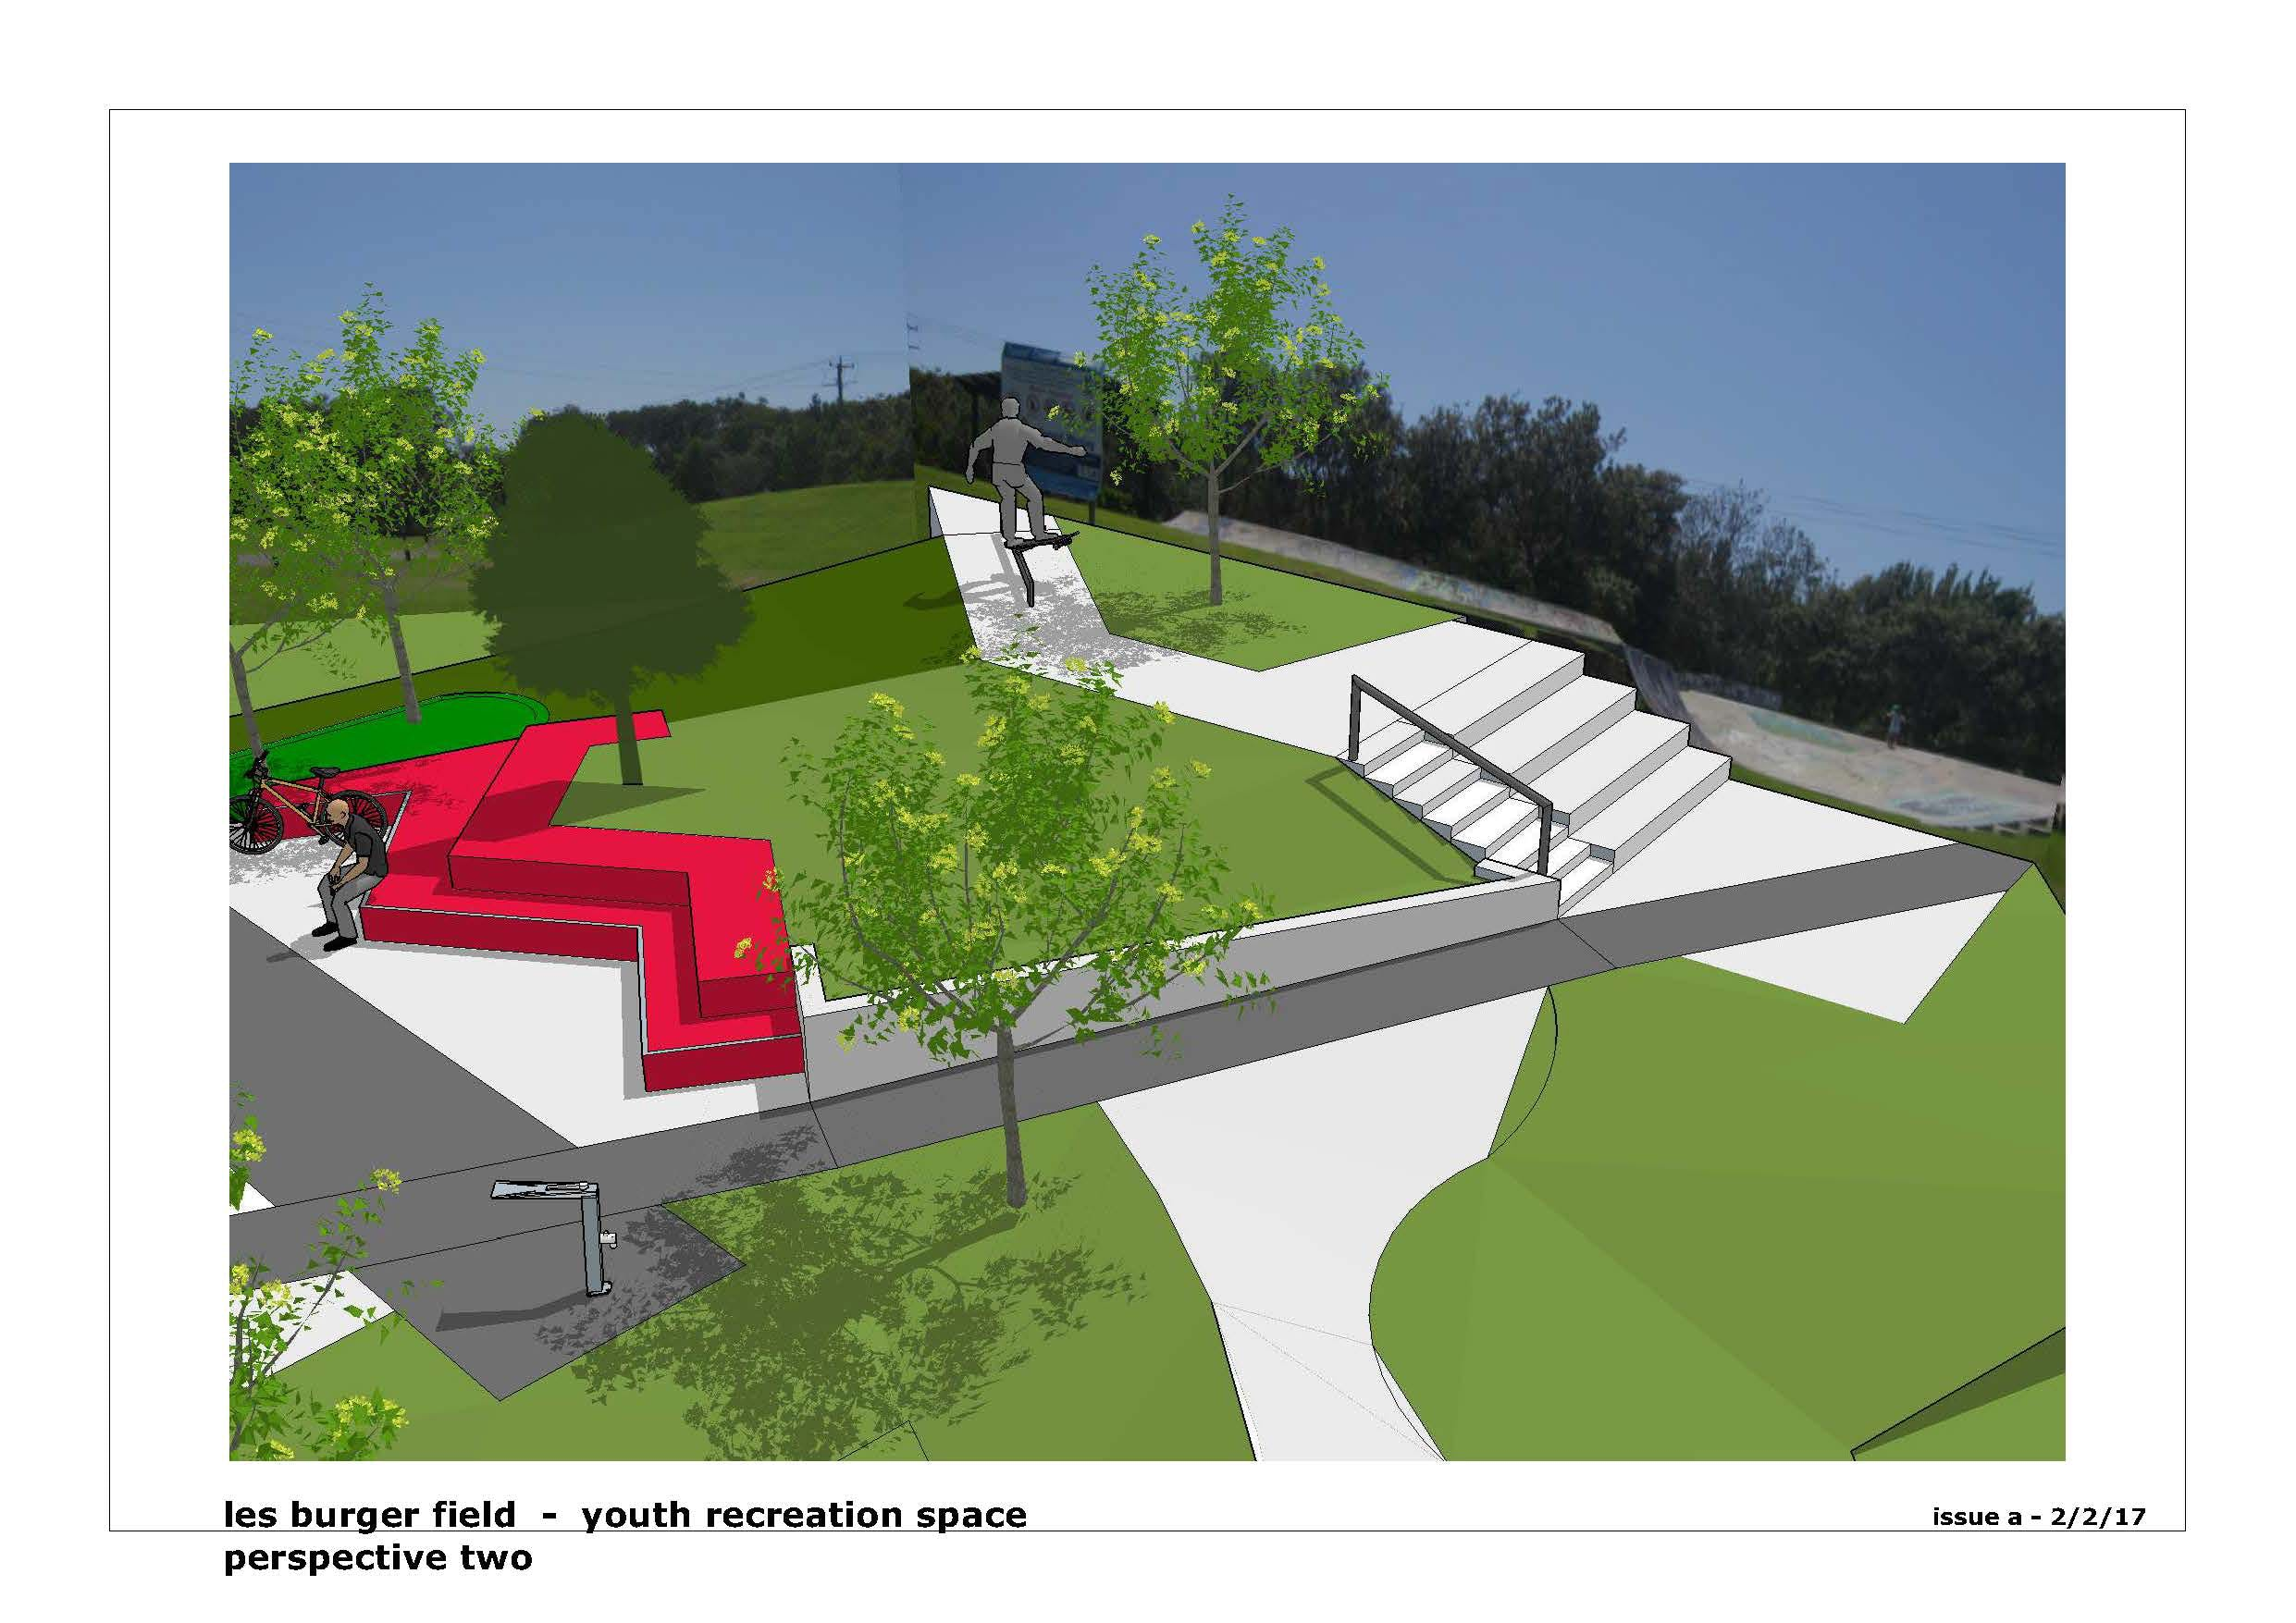 Artist's impression of the expanded youth recreation area - View 2